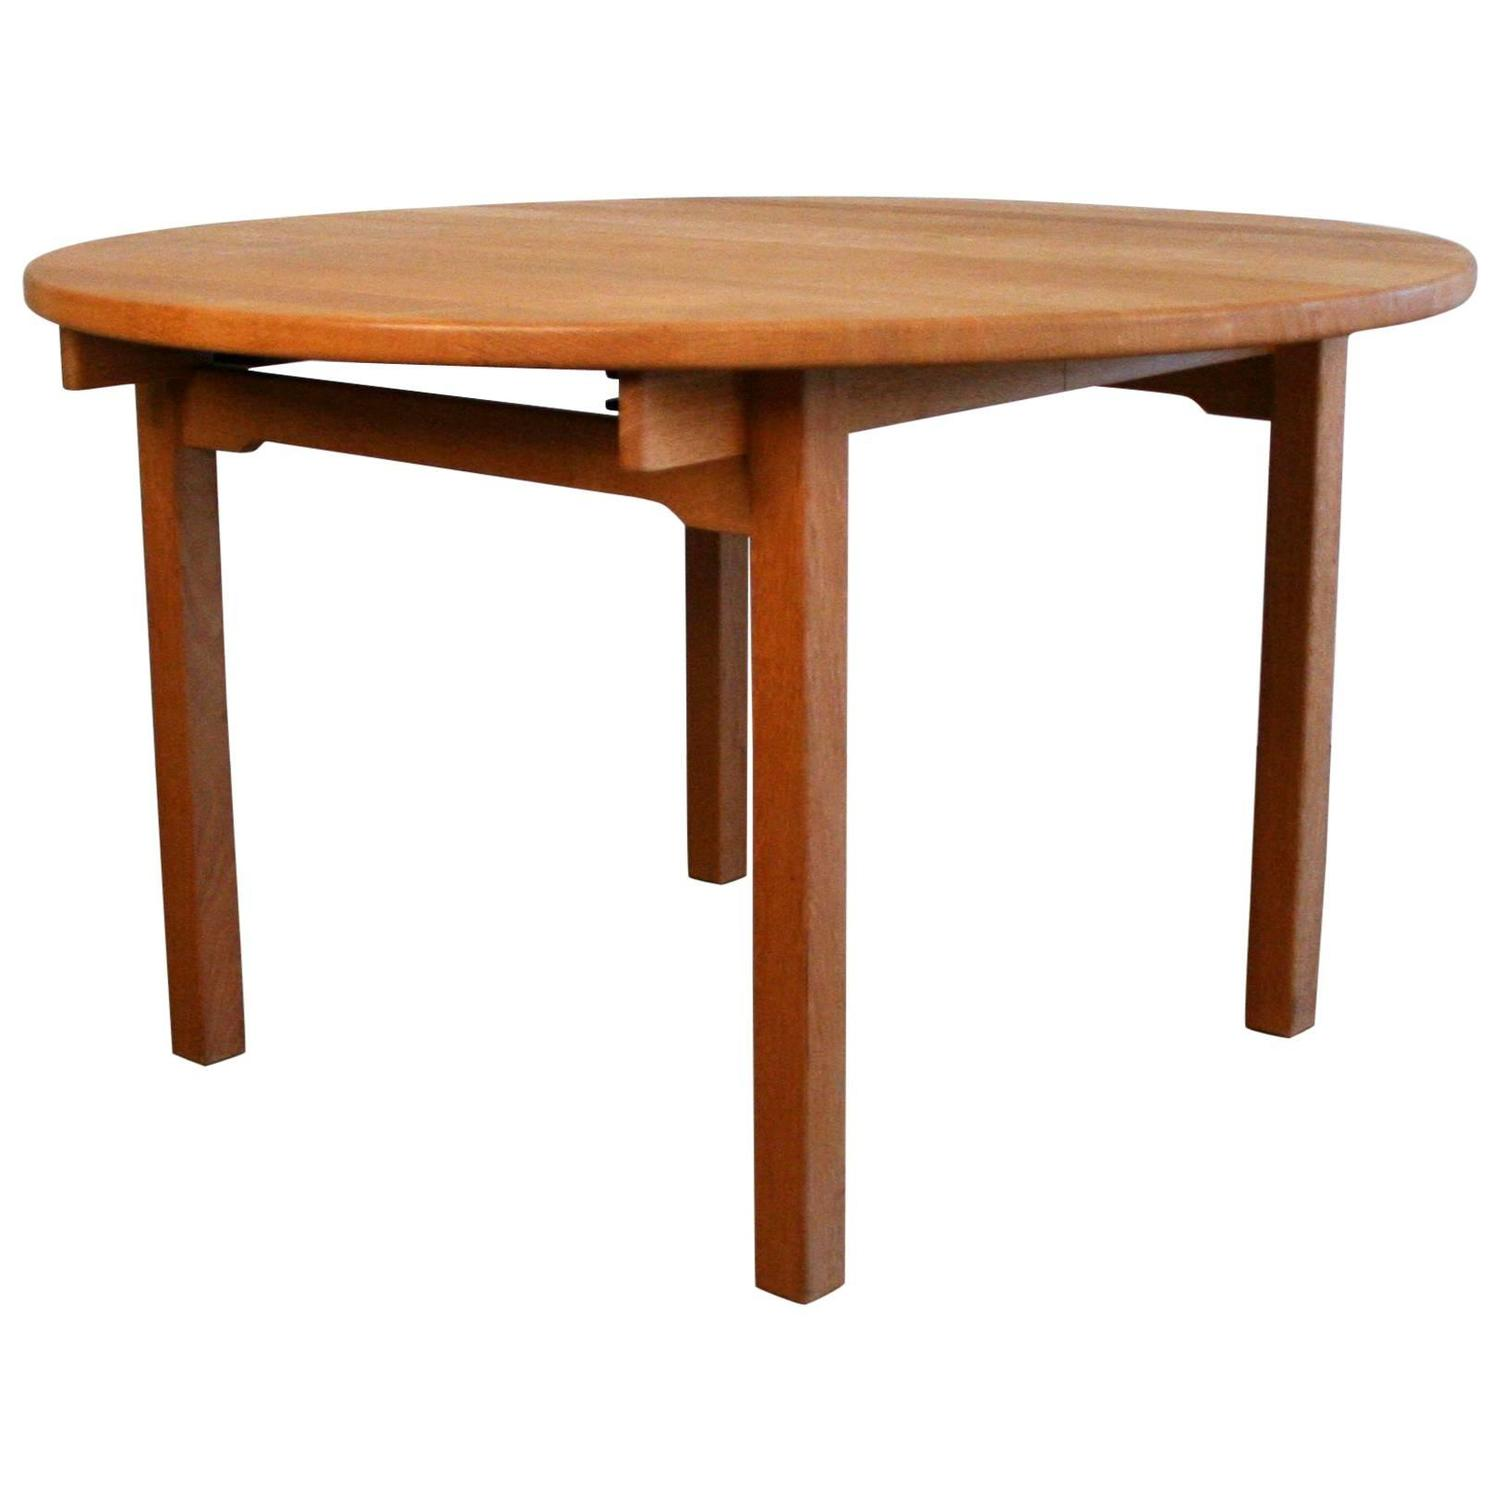 solid oak round dining table by kurt osterberg for sale at 1stdibs